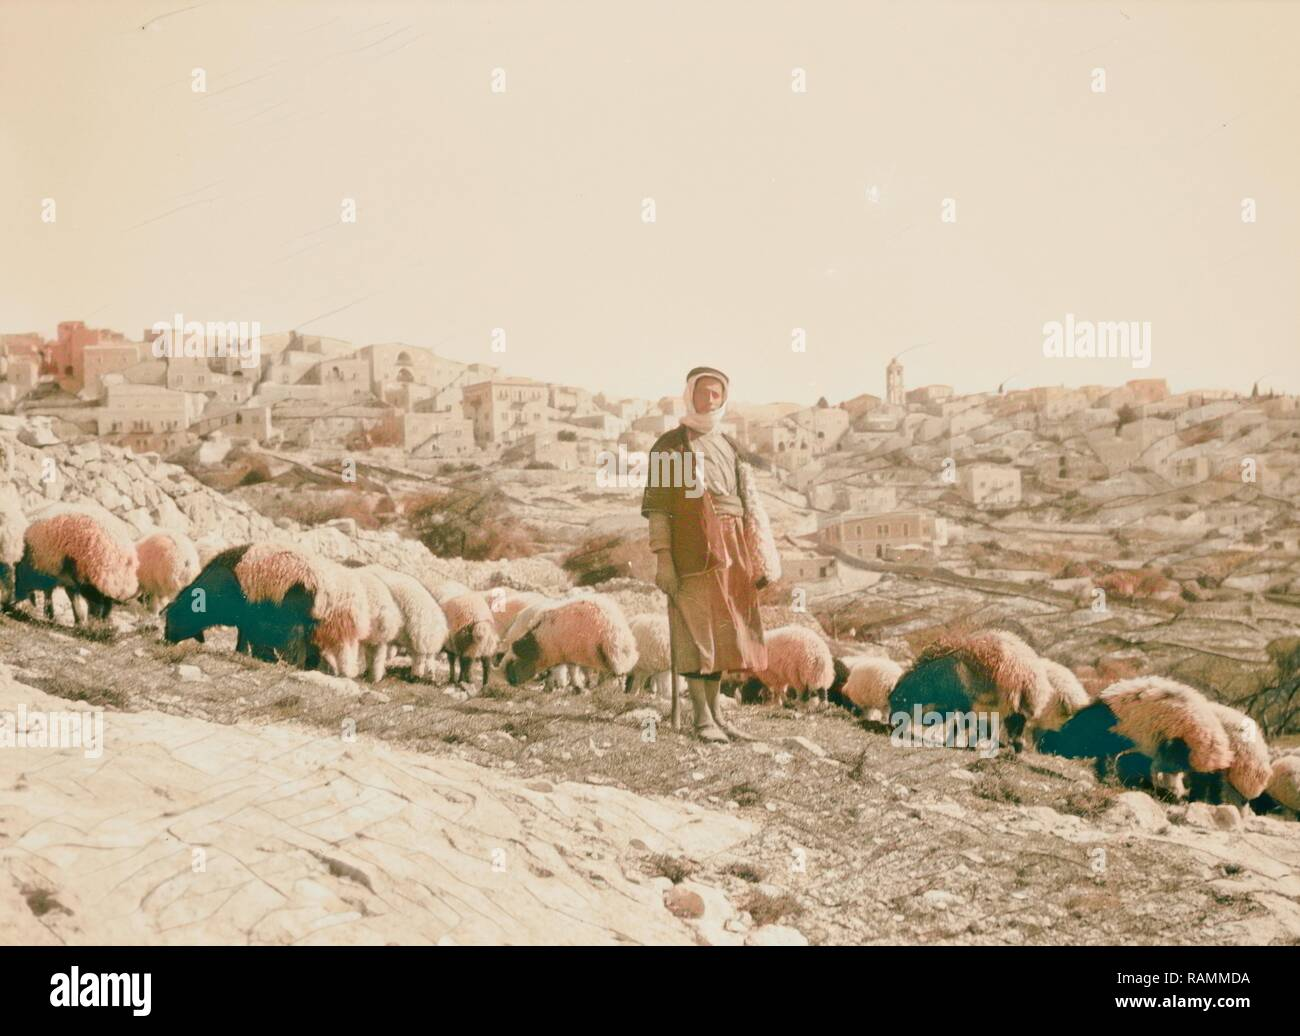 Bethlehem and surroundings. Bethlehem shepherd. 'Out of thee shall come forth one that shall shepherd my people reimagined - Stock Image